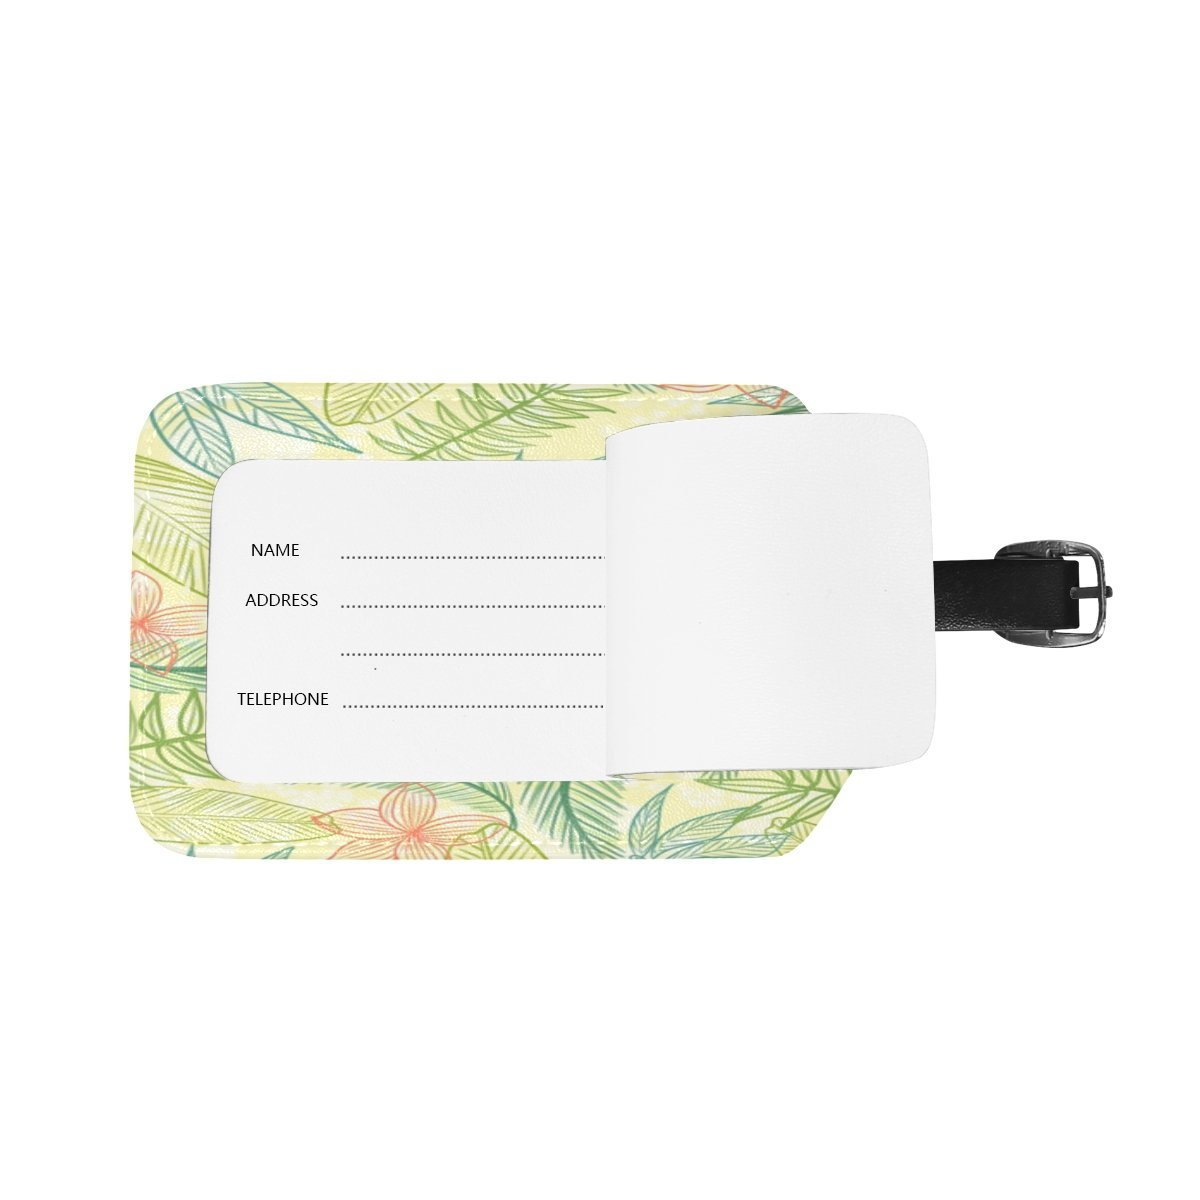 1Pcs Saobao Travel Luggage Tag Tropical Plants Background PU Leather Baggage Suitcase Travel ID Bag Tag